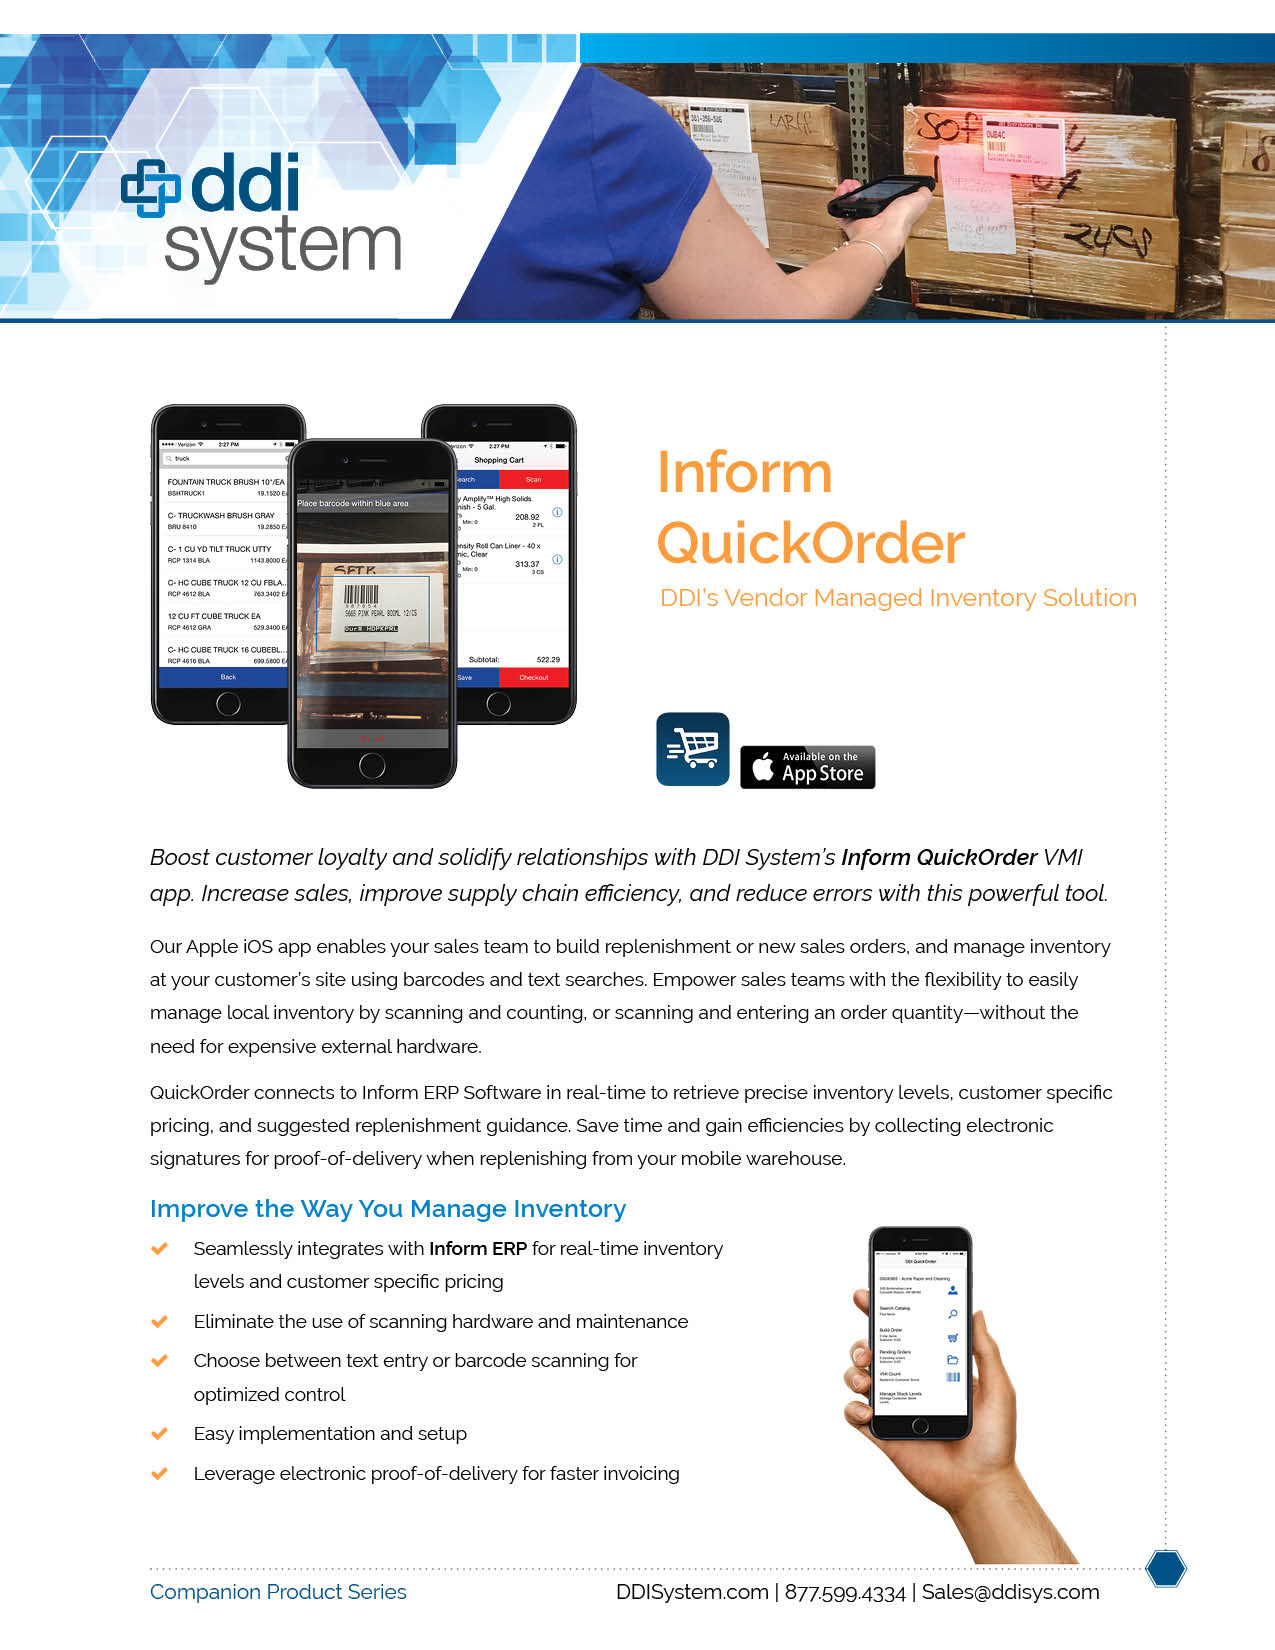 QuickOrder vendor managed inventory